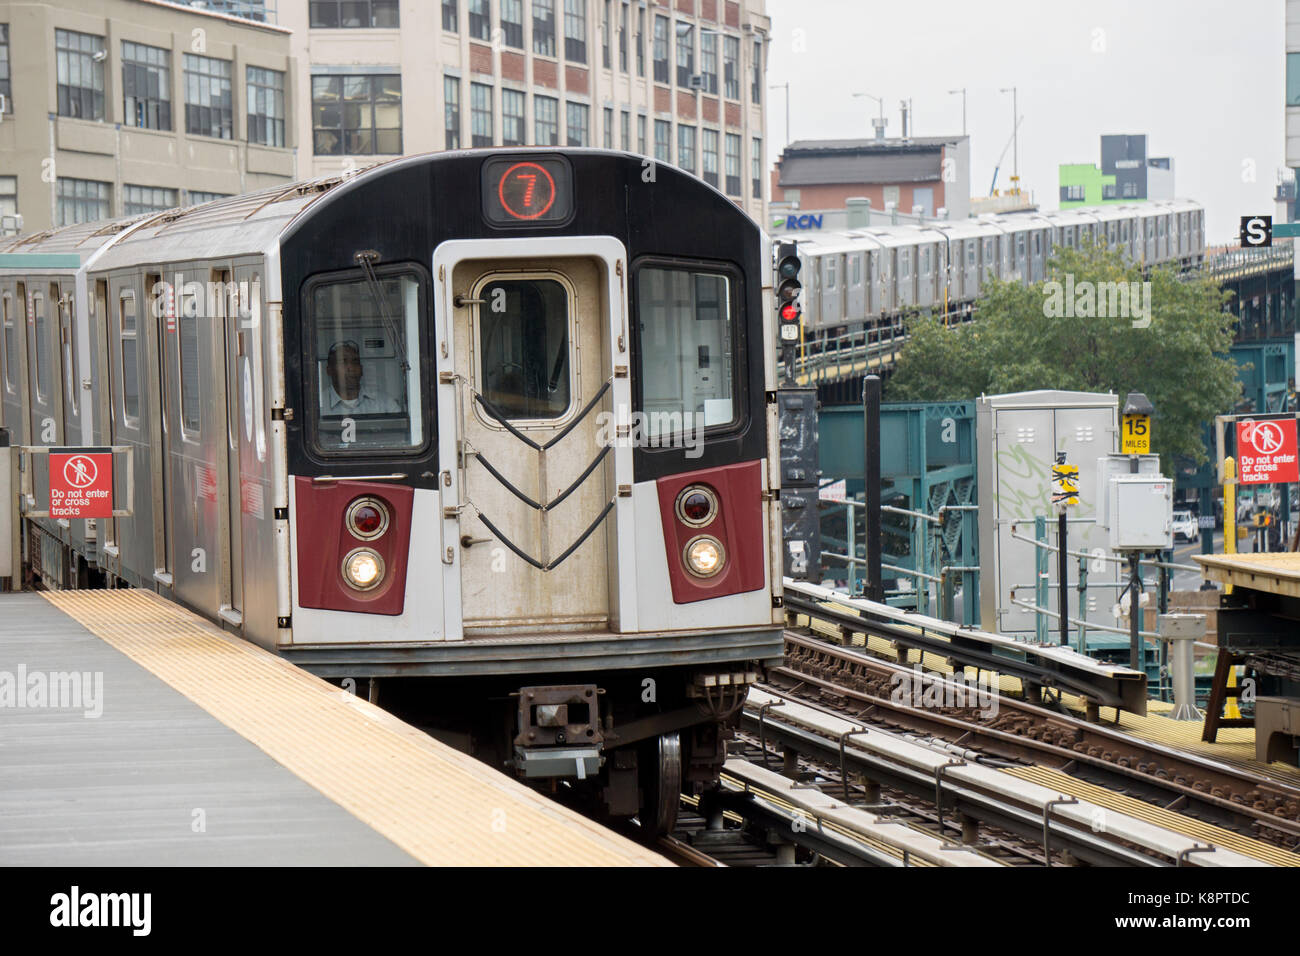 The Manhattan bound #7 elevated subway train pulling into the 45th Road-Courthouse Square station in Long Island - Stock Image